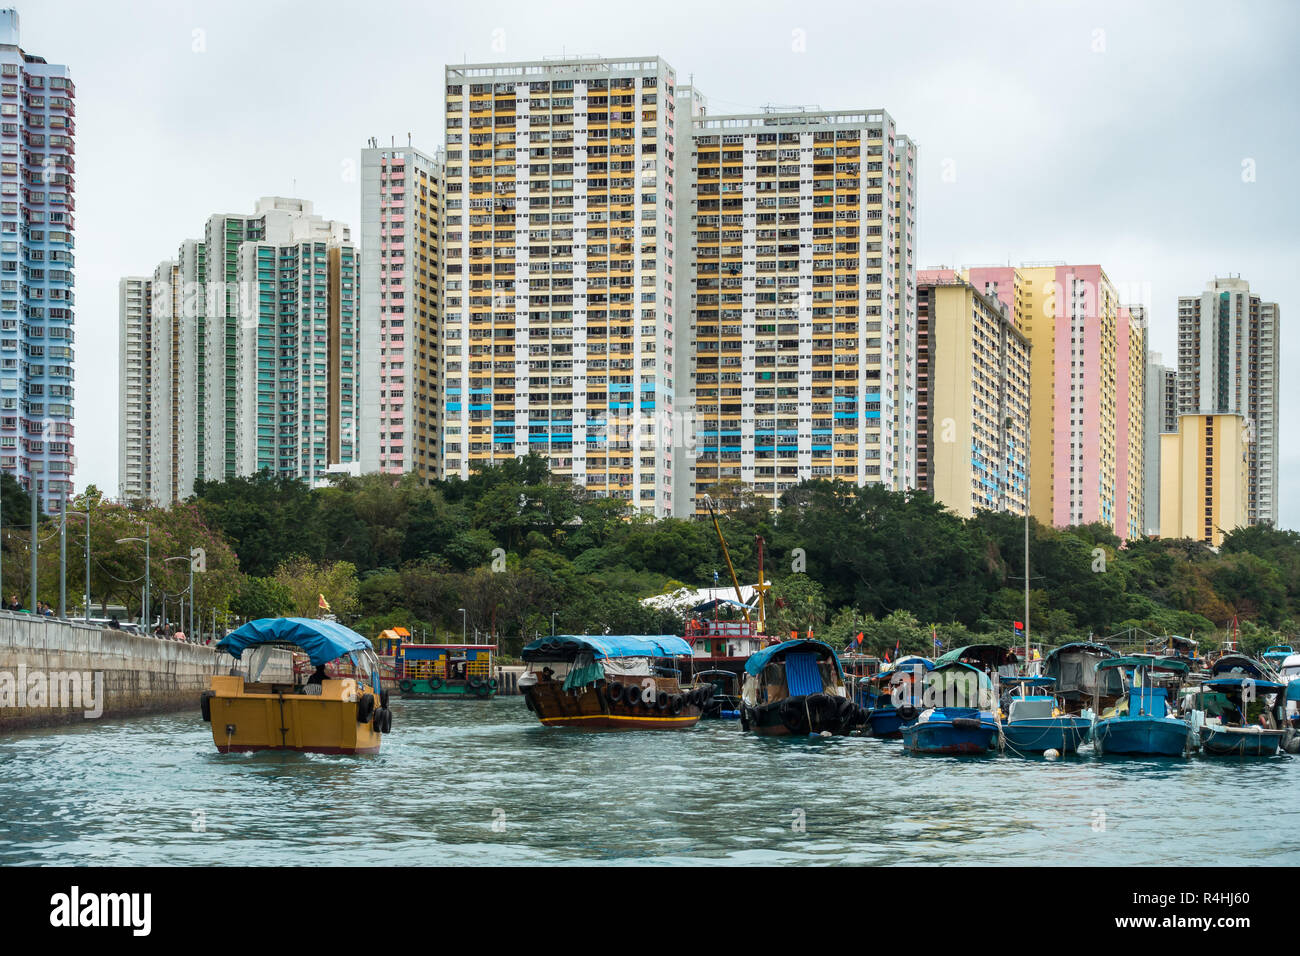 Sampan cruise in Aberdeen harbour, famous for the floating village with old junks and house boats, Hong Kong Stock Photo